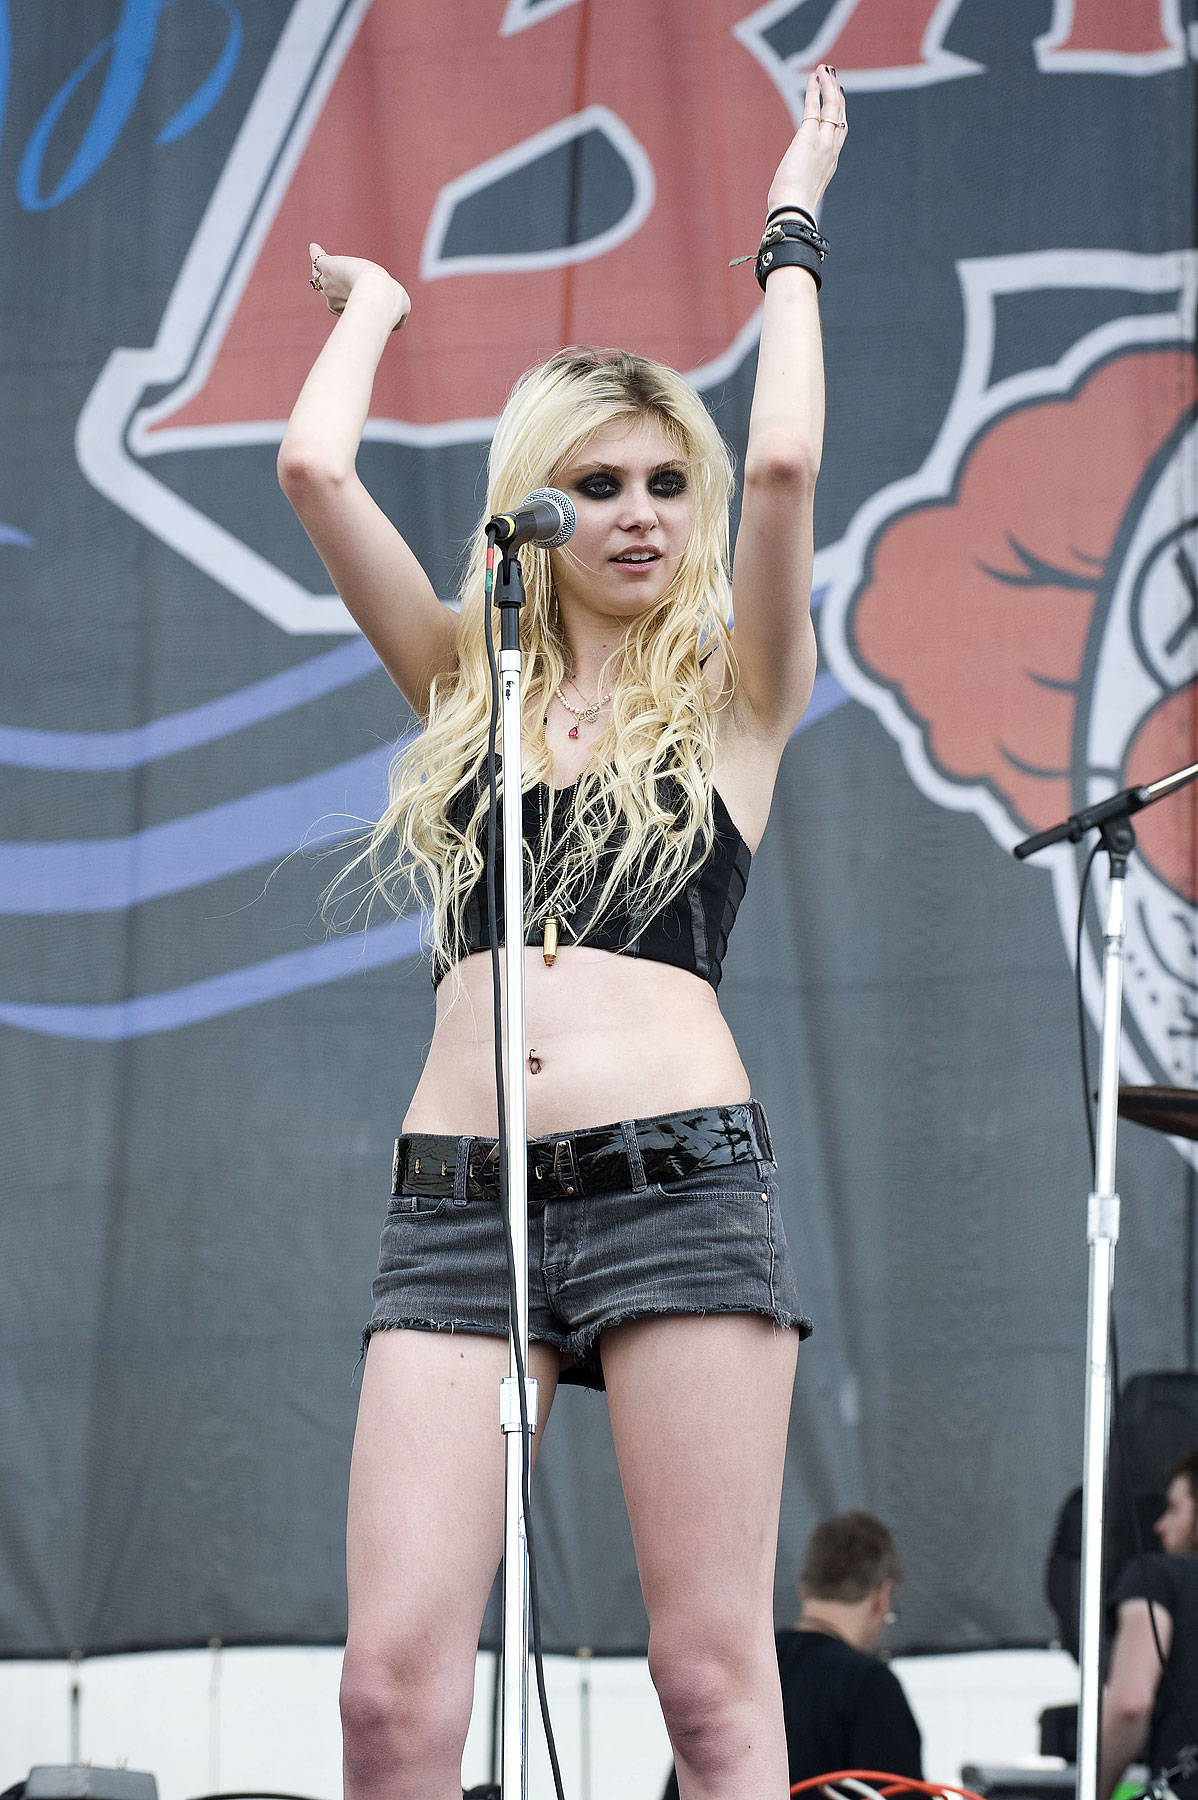 Bikini Taylor Momsen naked (65 photos), Sexy, Cleavage, Boobs, braless 2020